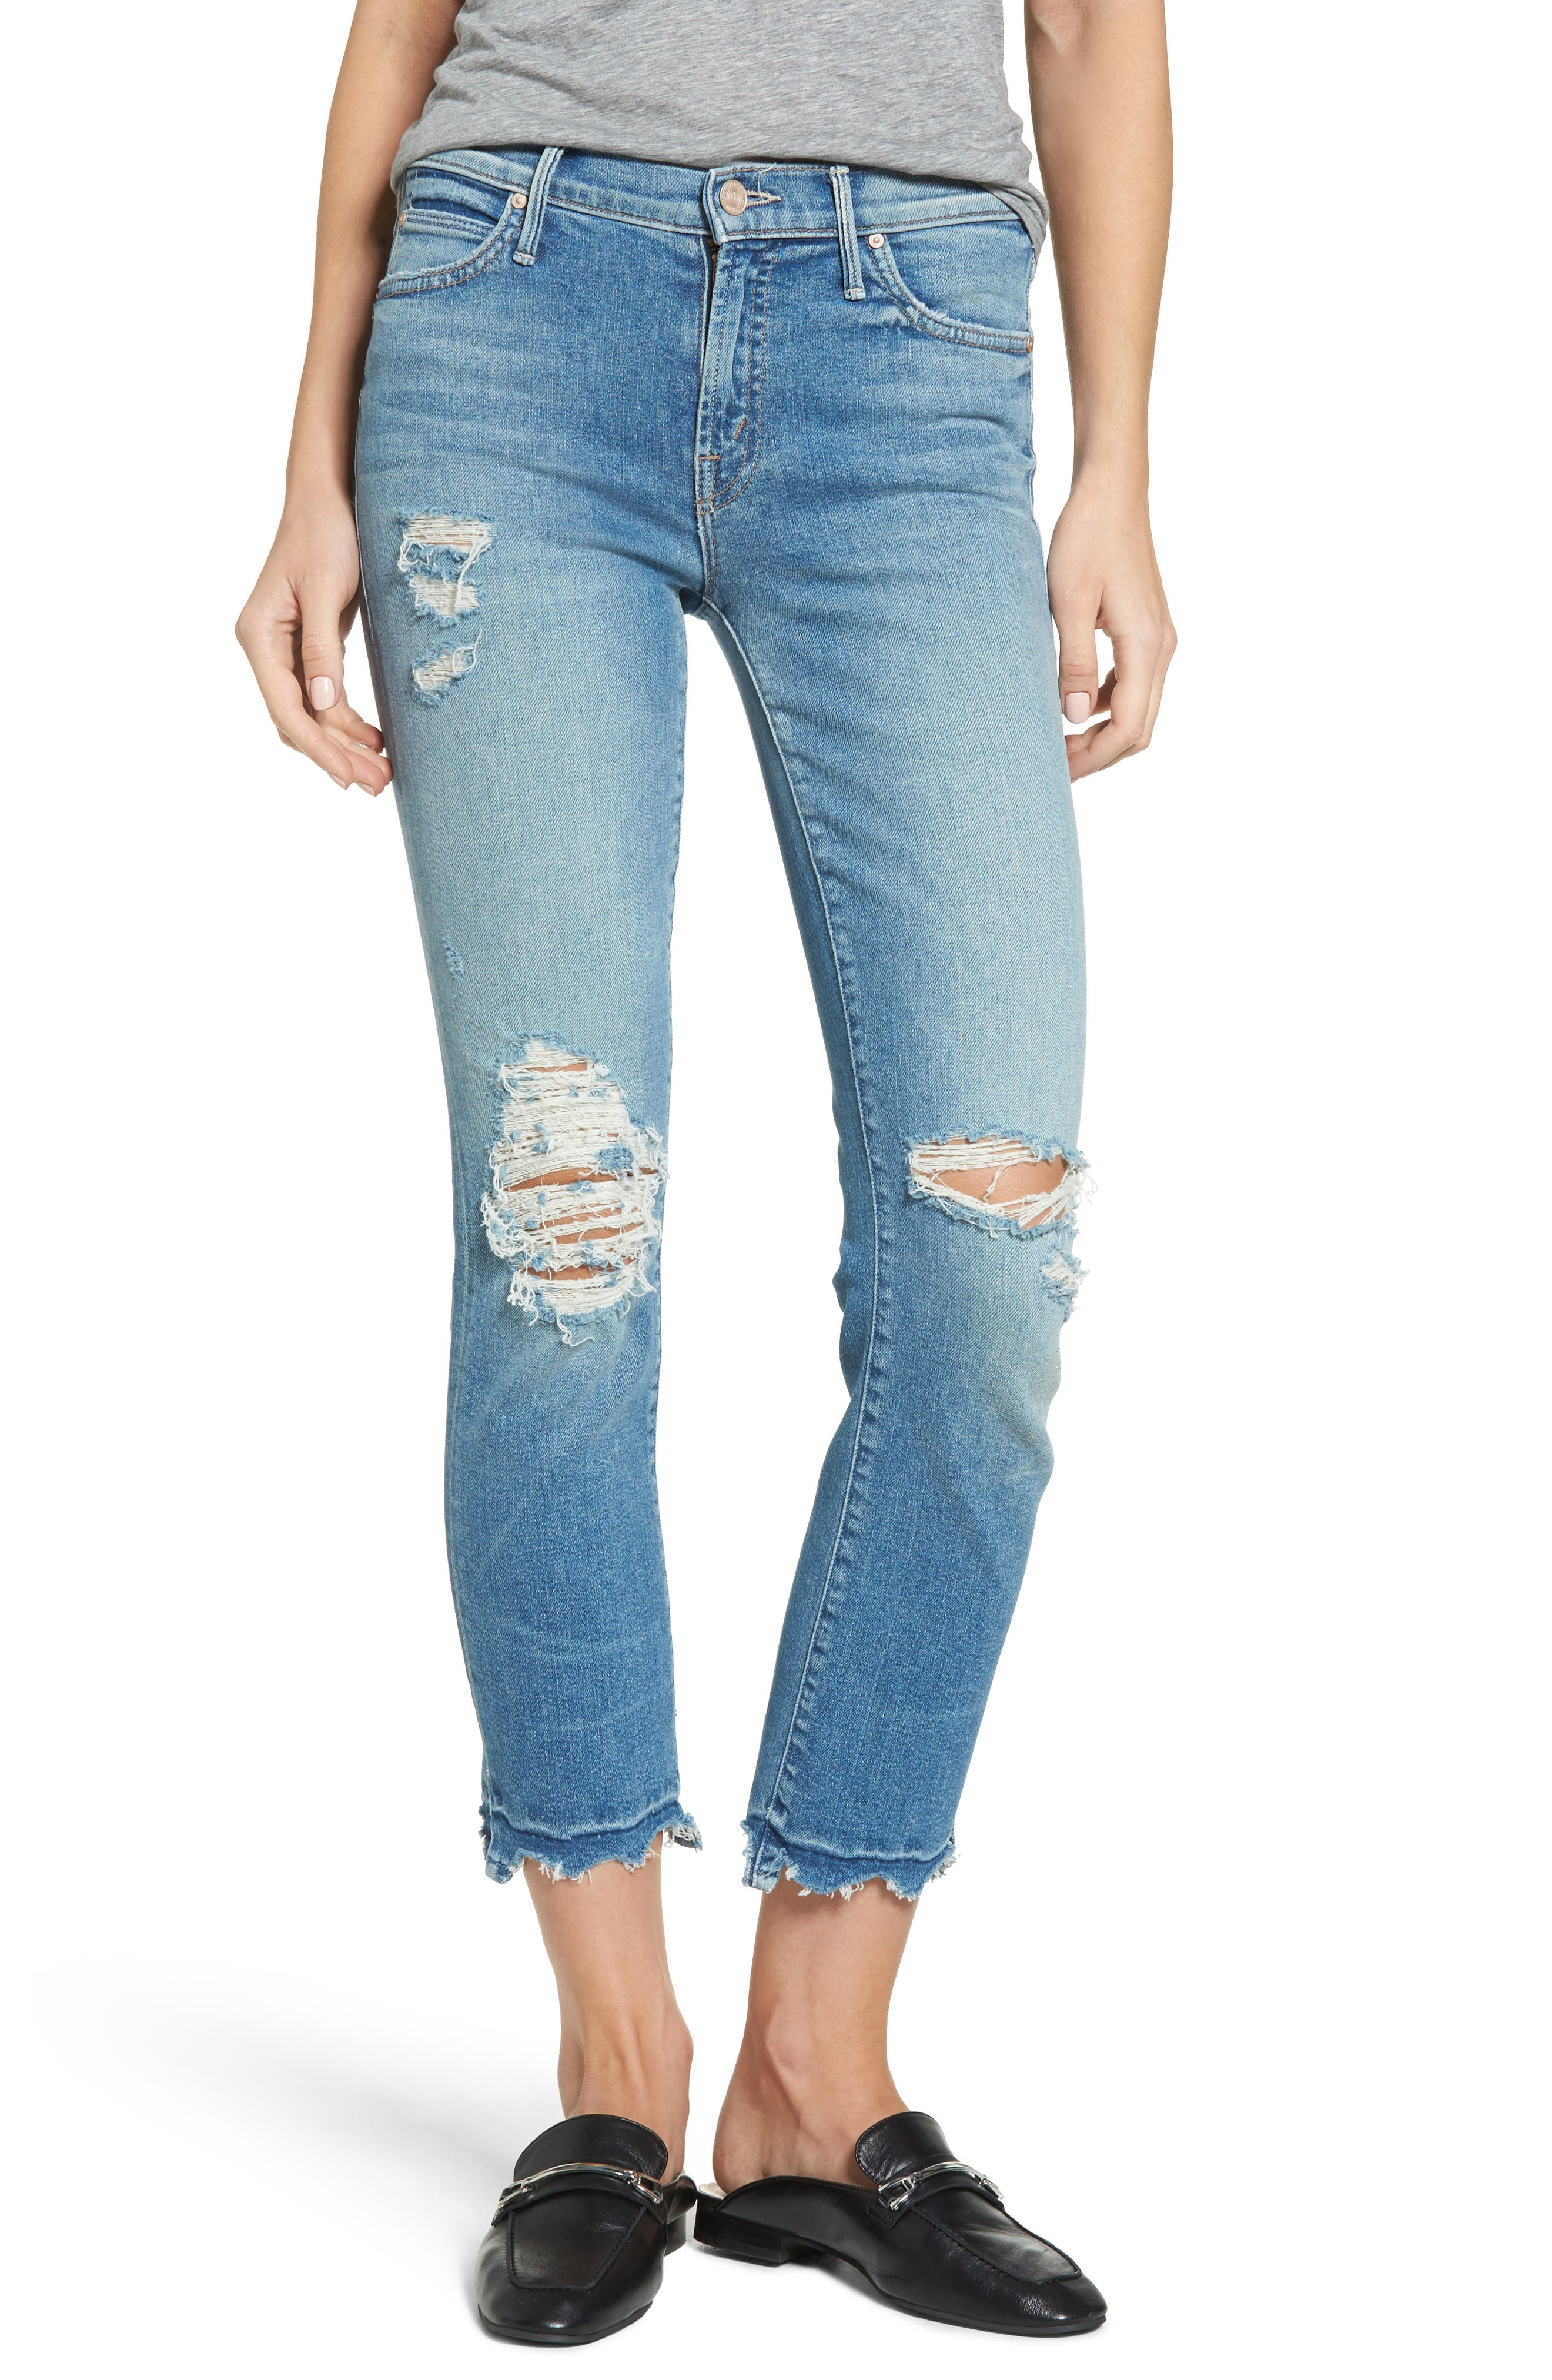 Alternate Image 1 Selected - MOTHER The Rascal High Waist Ankle Jeans (Push The Envelope)